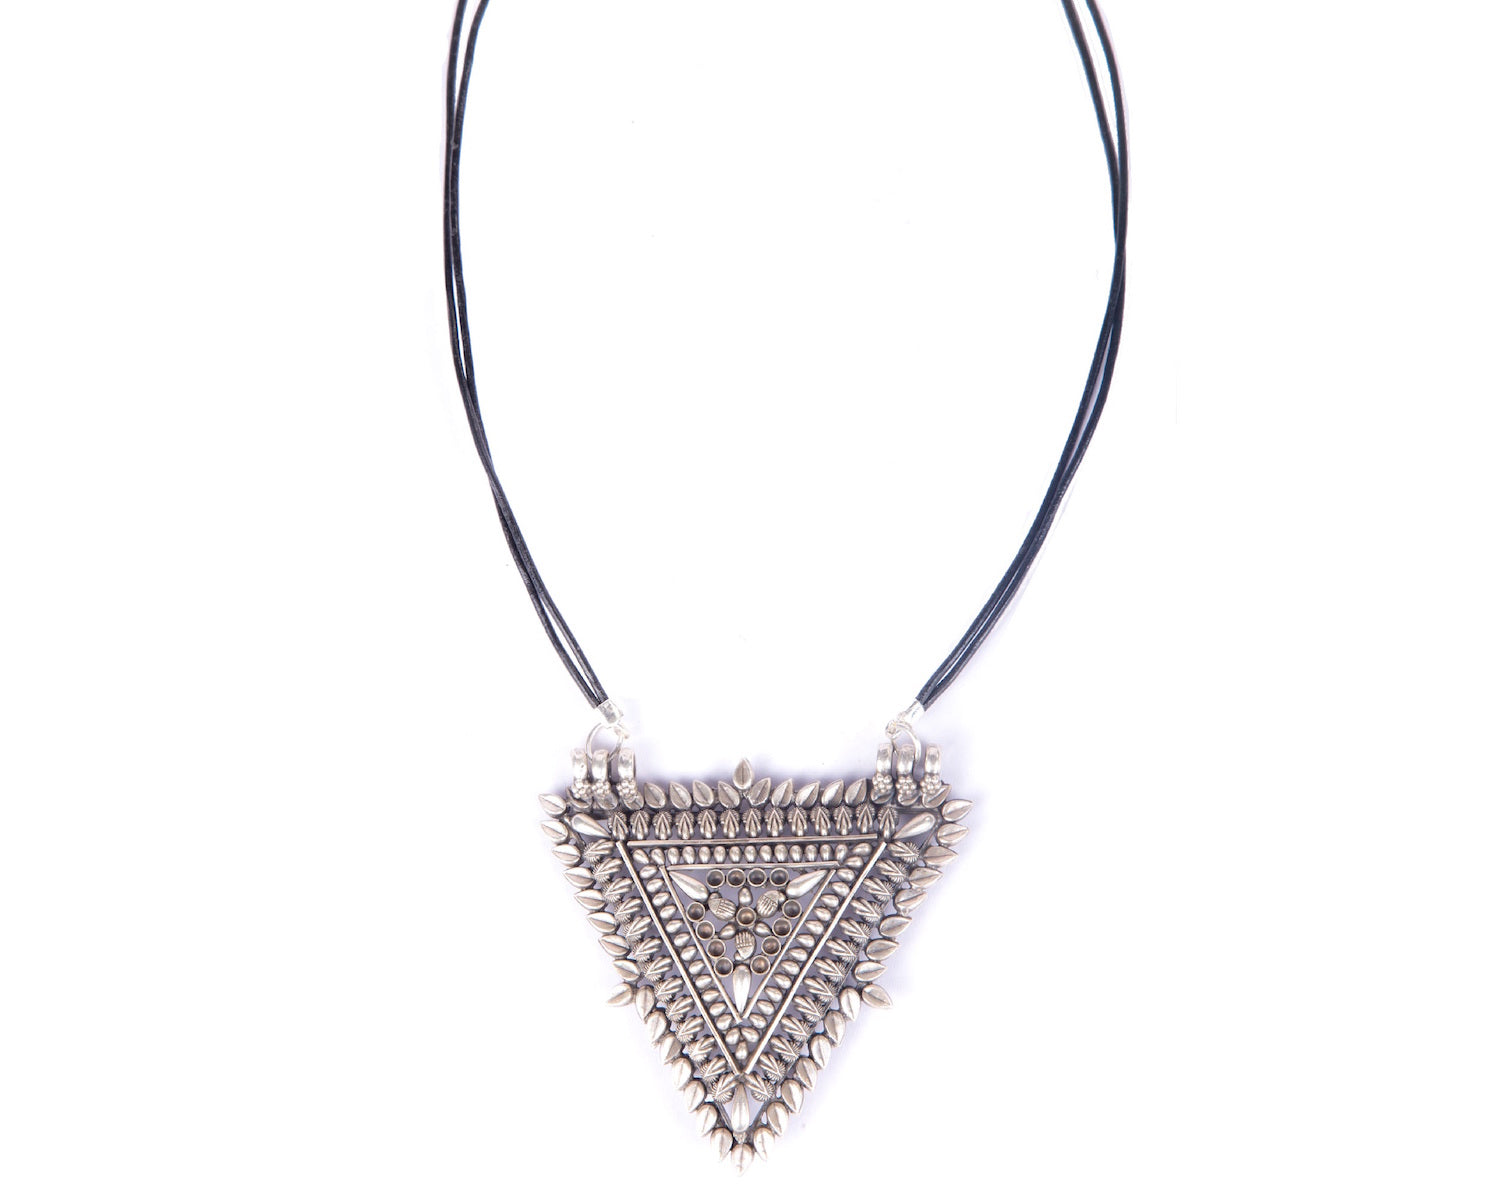 Sterling silver oxidized triangular shaped pendant strung in twin leather cords